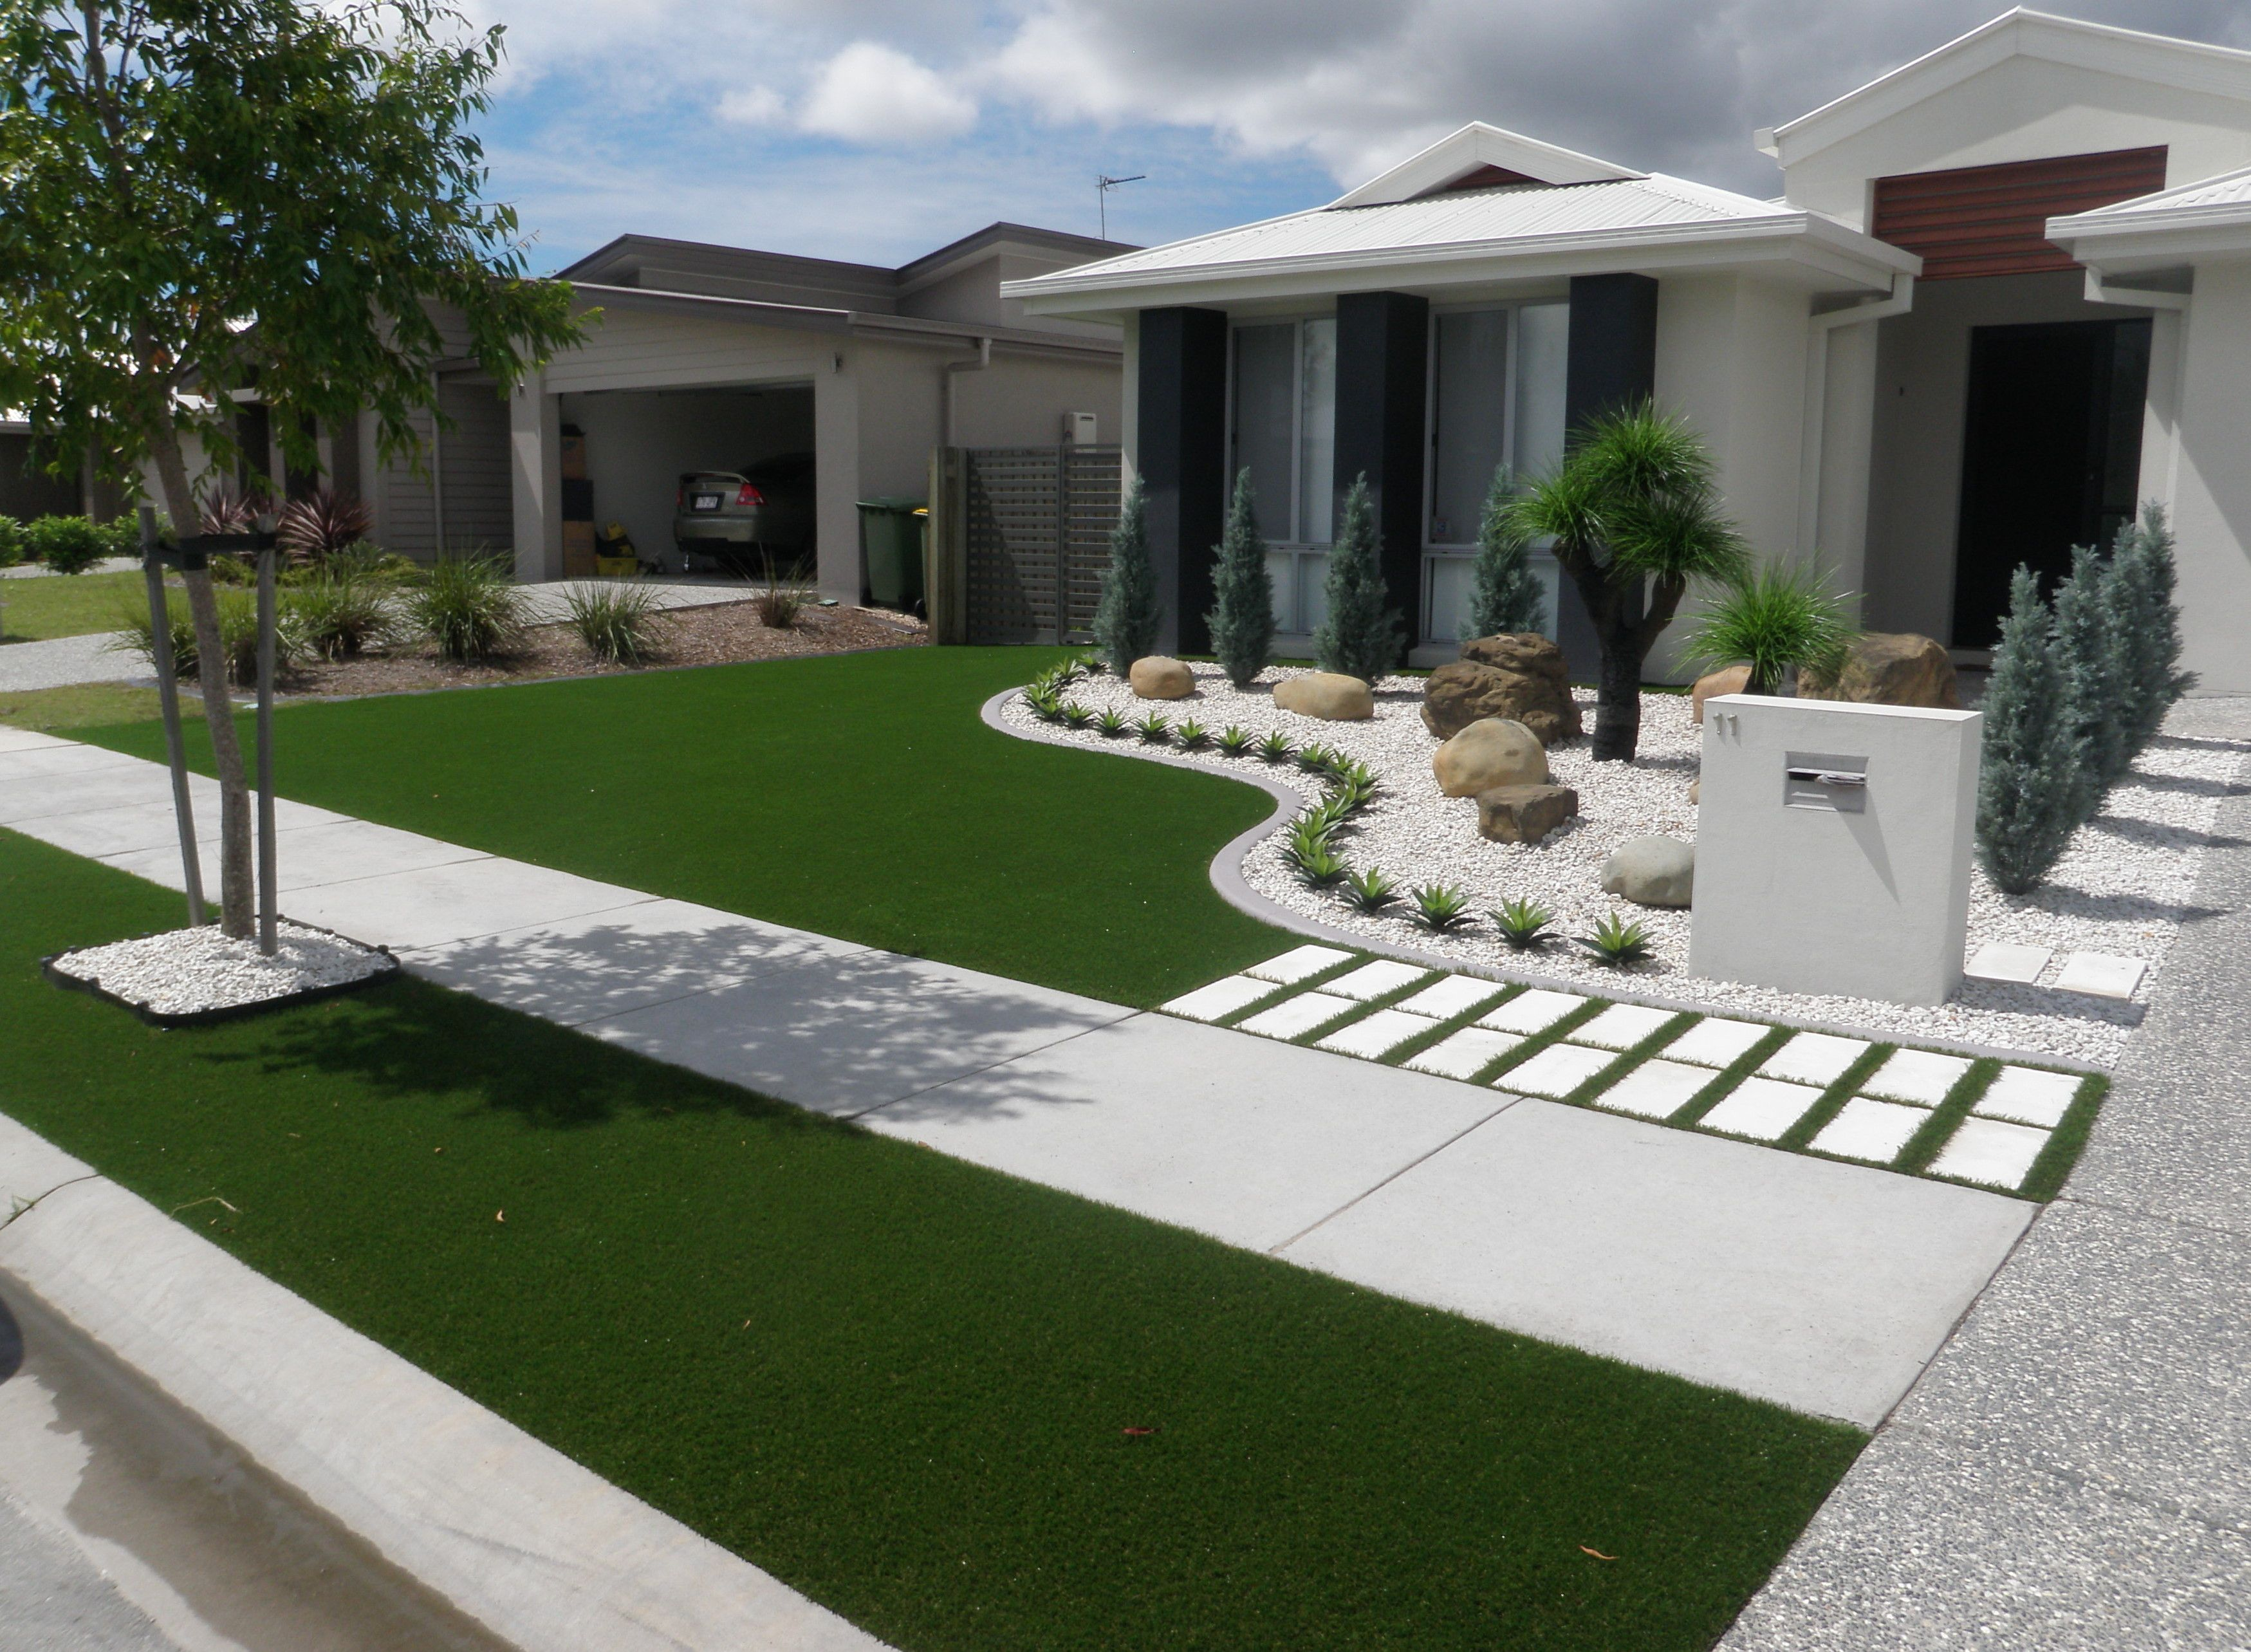 Synthetic grass front yard designs landscape yards Best backyard landscape designs